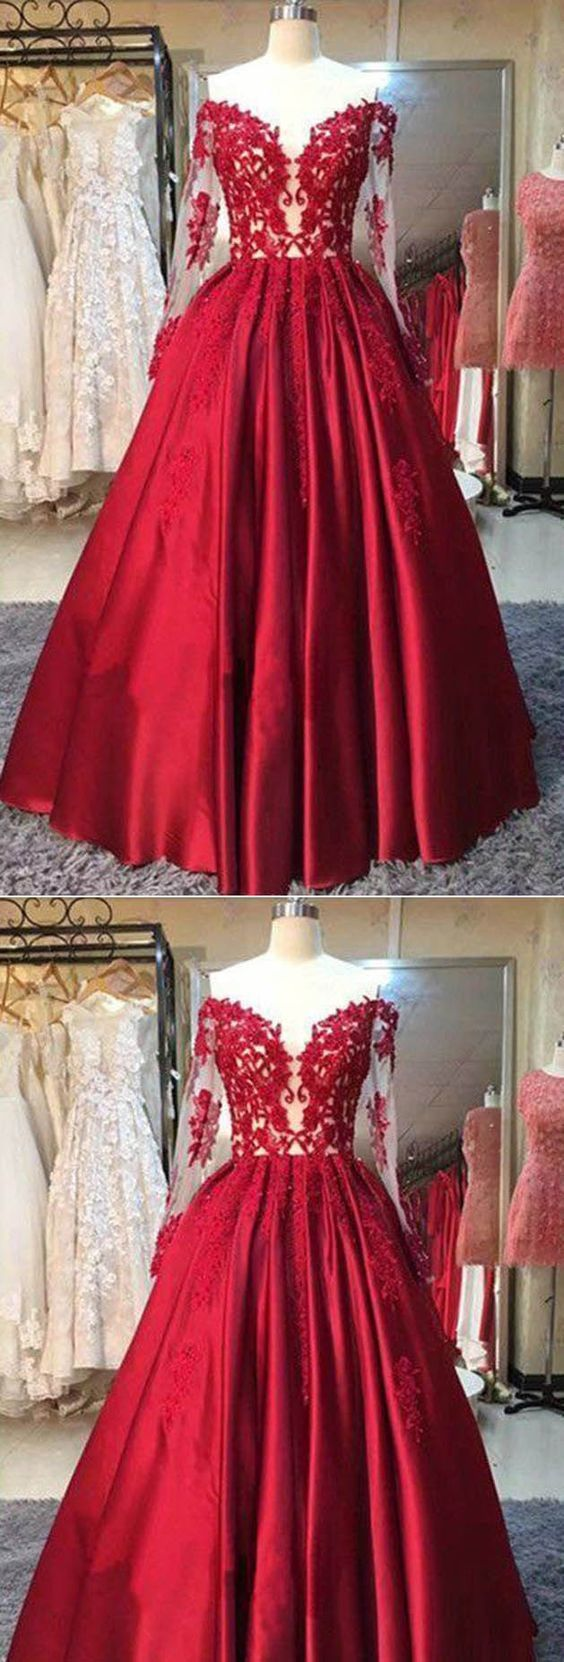 c8baf3212de Burgundy Red Wedding Engagement Dresses Women by MeetBeauty on Zibbet